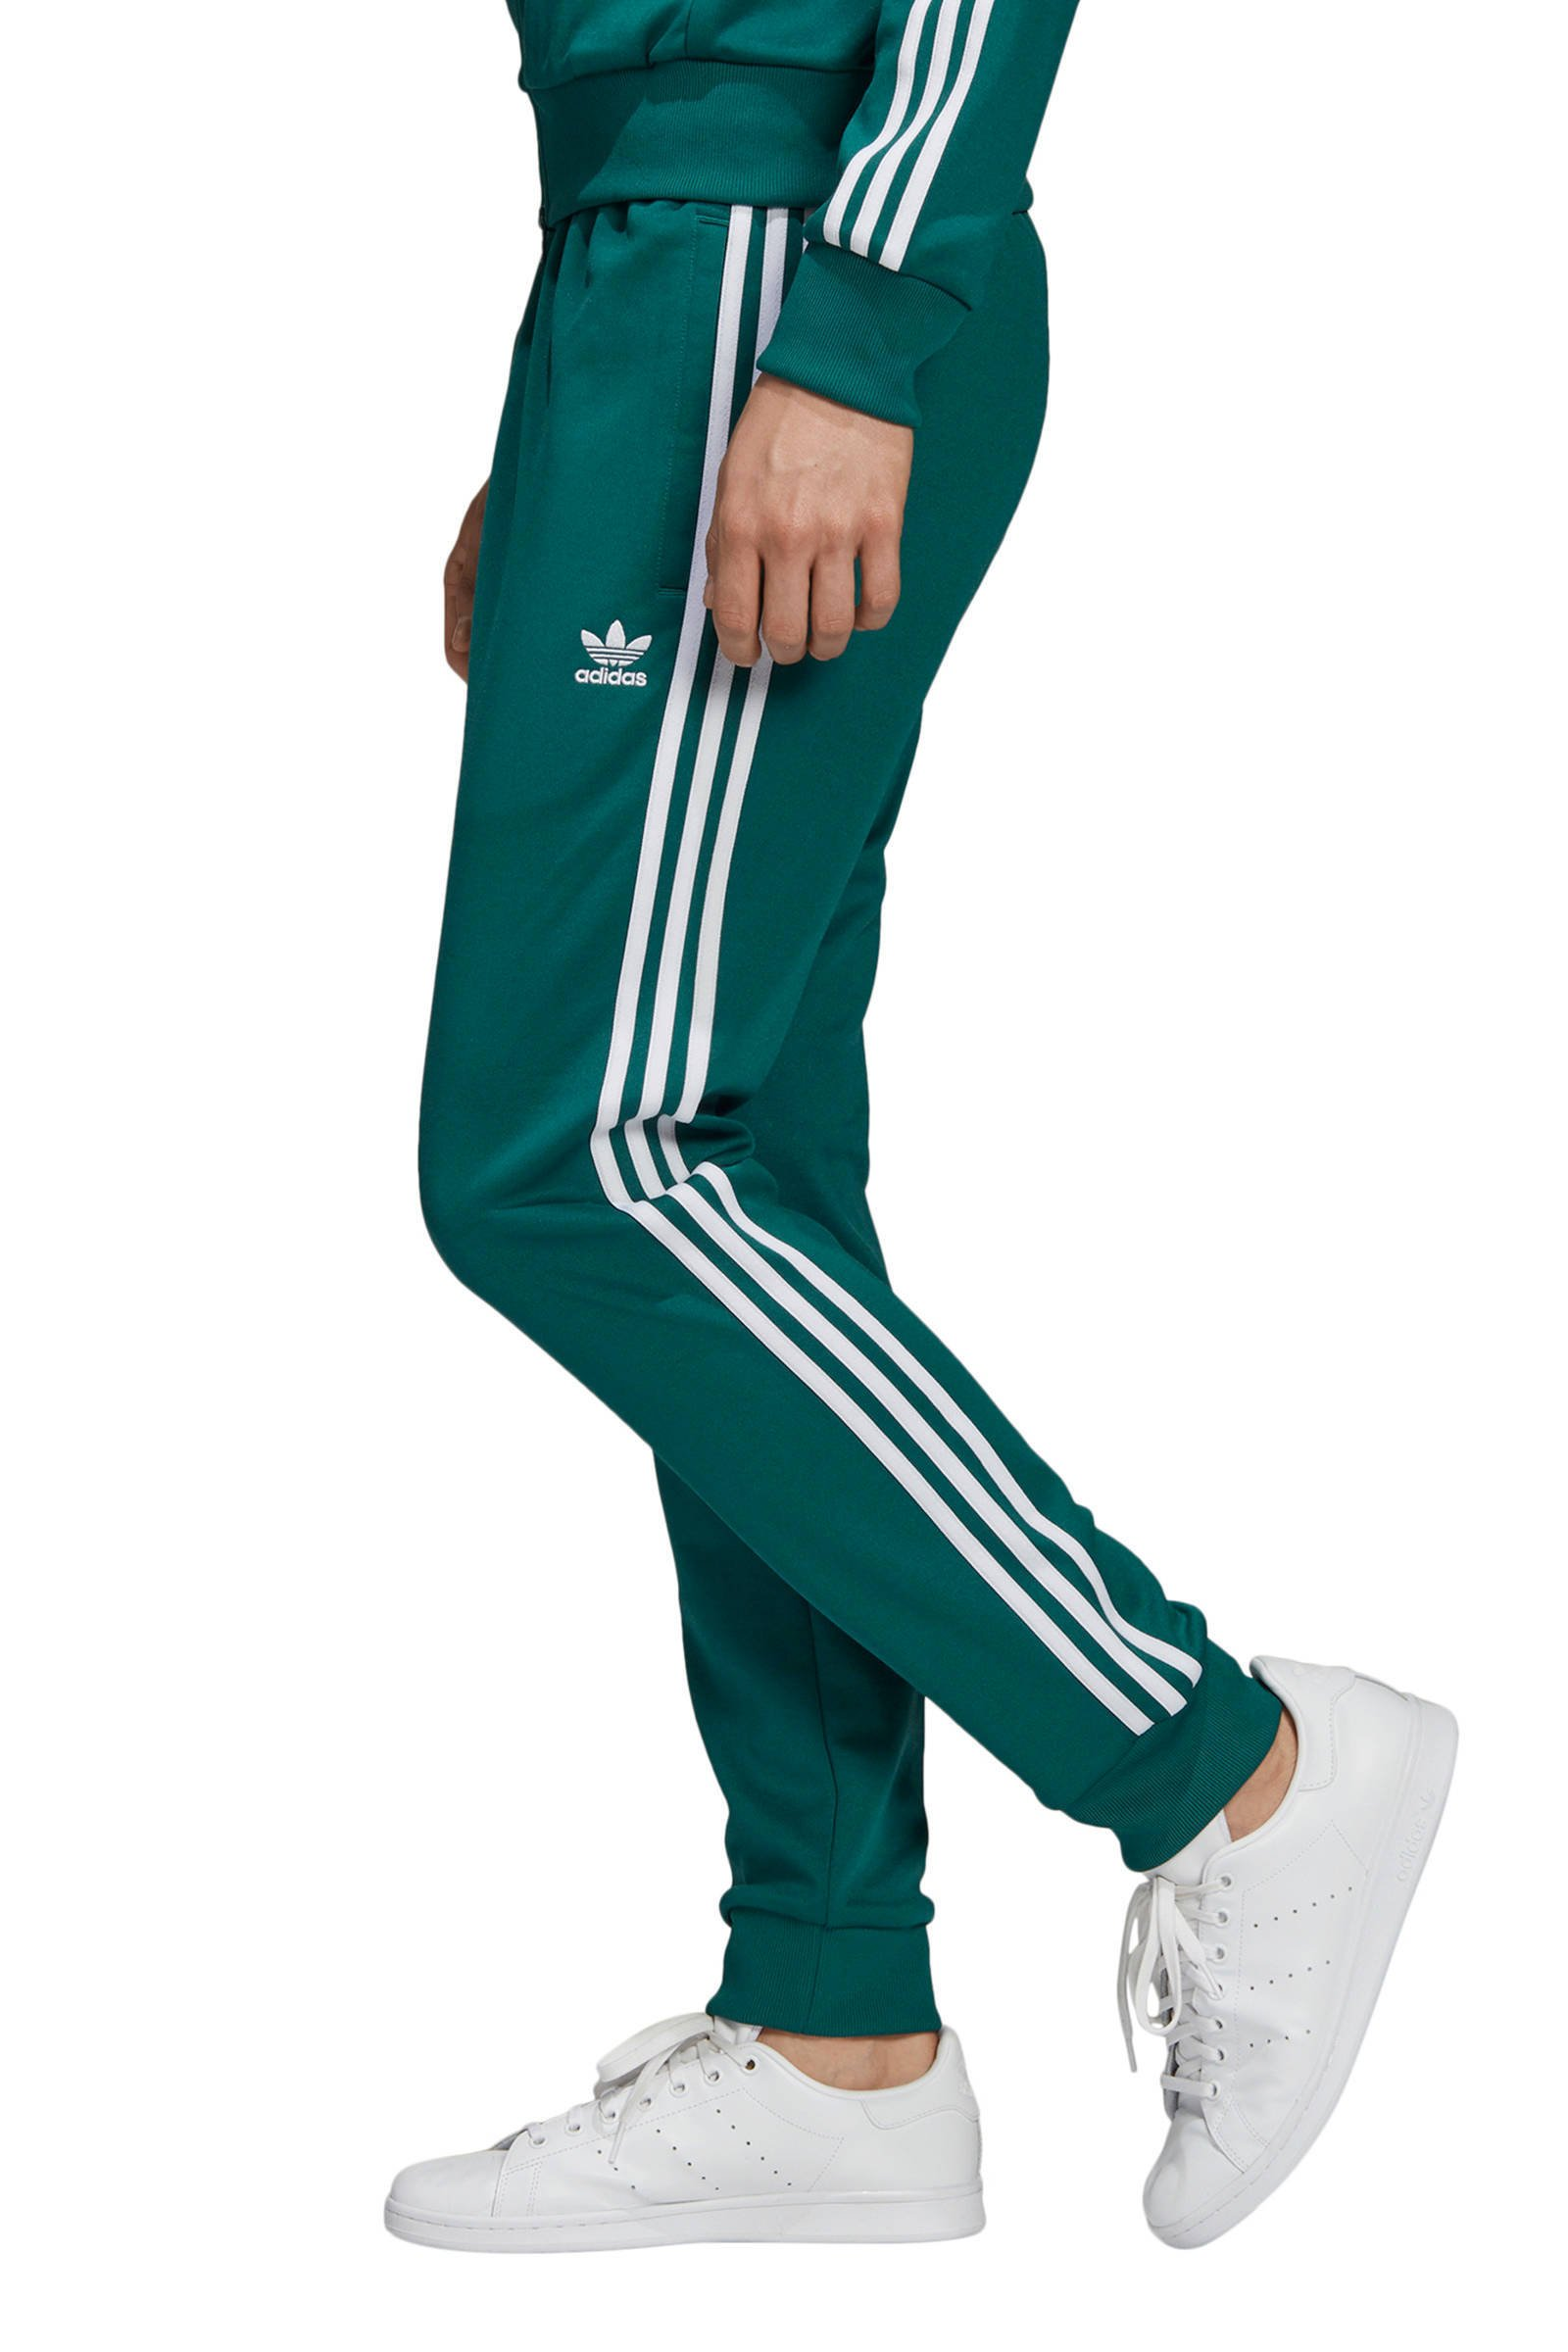 adidas Originals Adicolor trainingsbroek groen | wehkamp